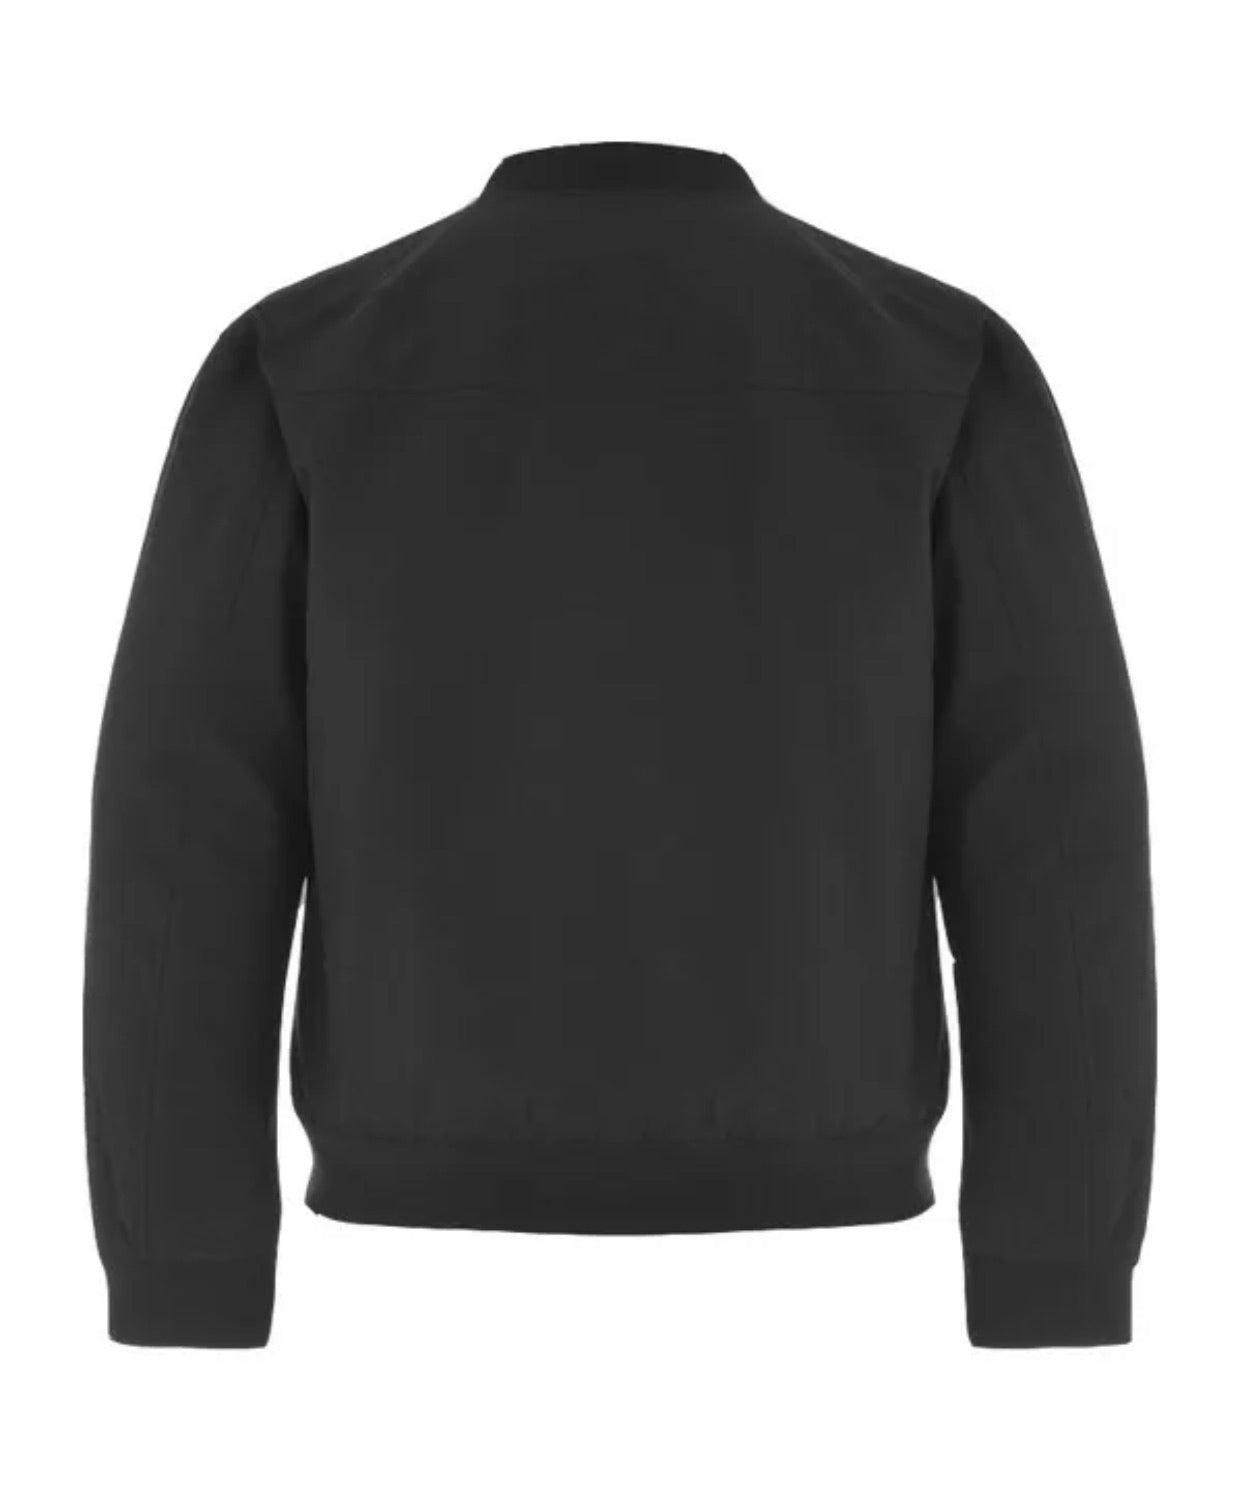 The Canvas Cotton Bomber - Up to Size 5XL